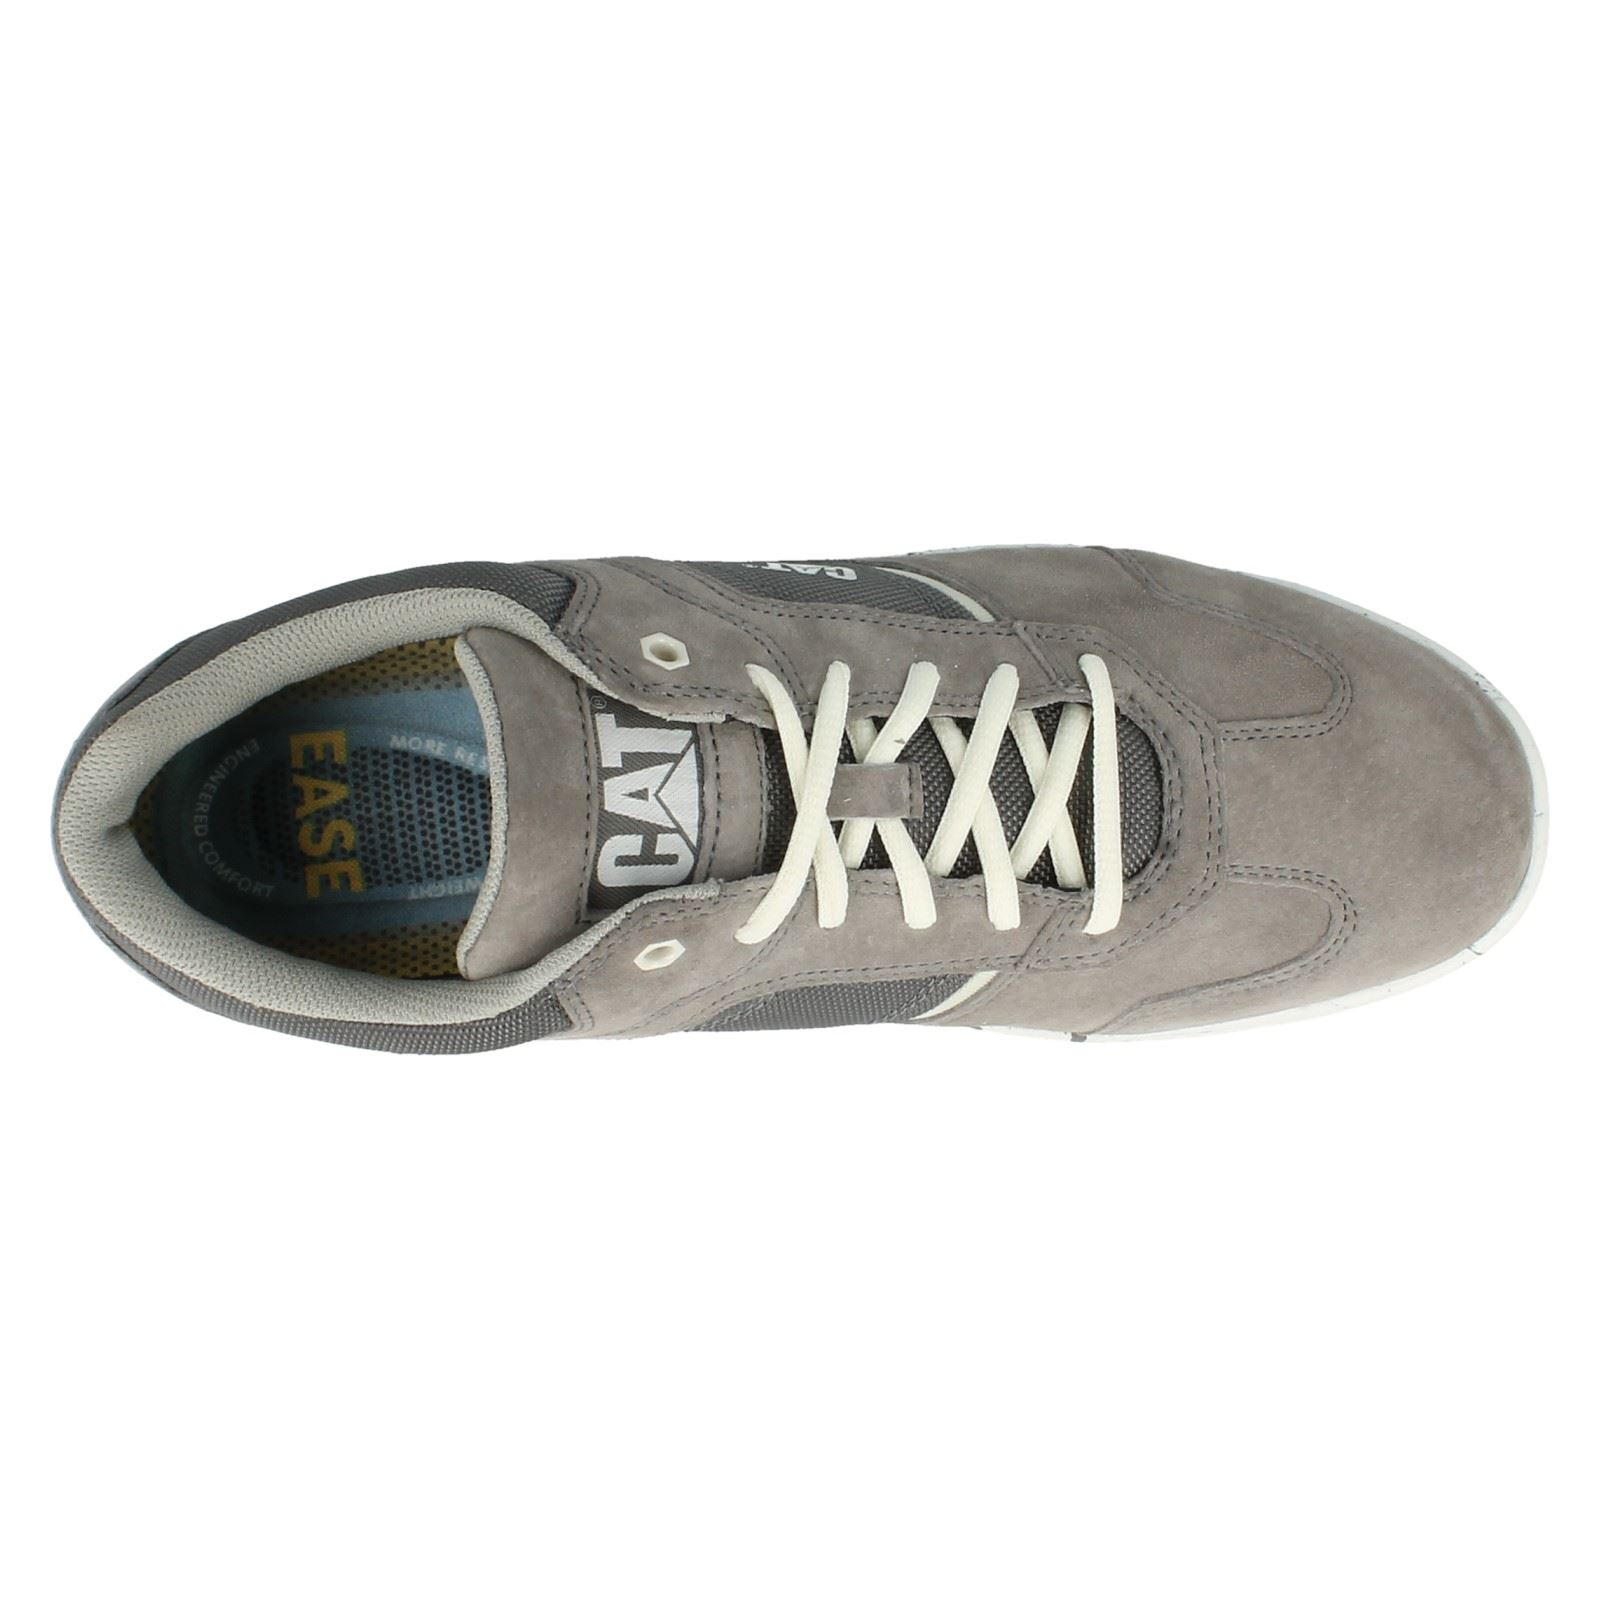 Uomo Label Caterpillar Lace Up Trainers Label Uomo Chasm 9fbdbf